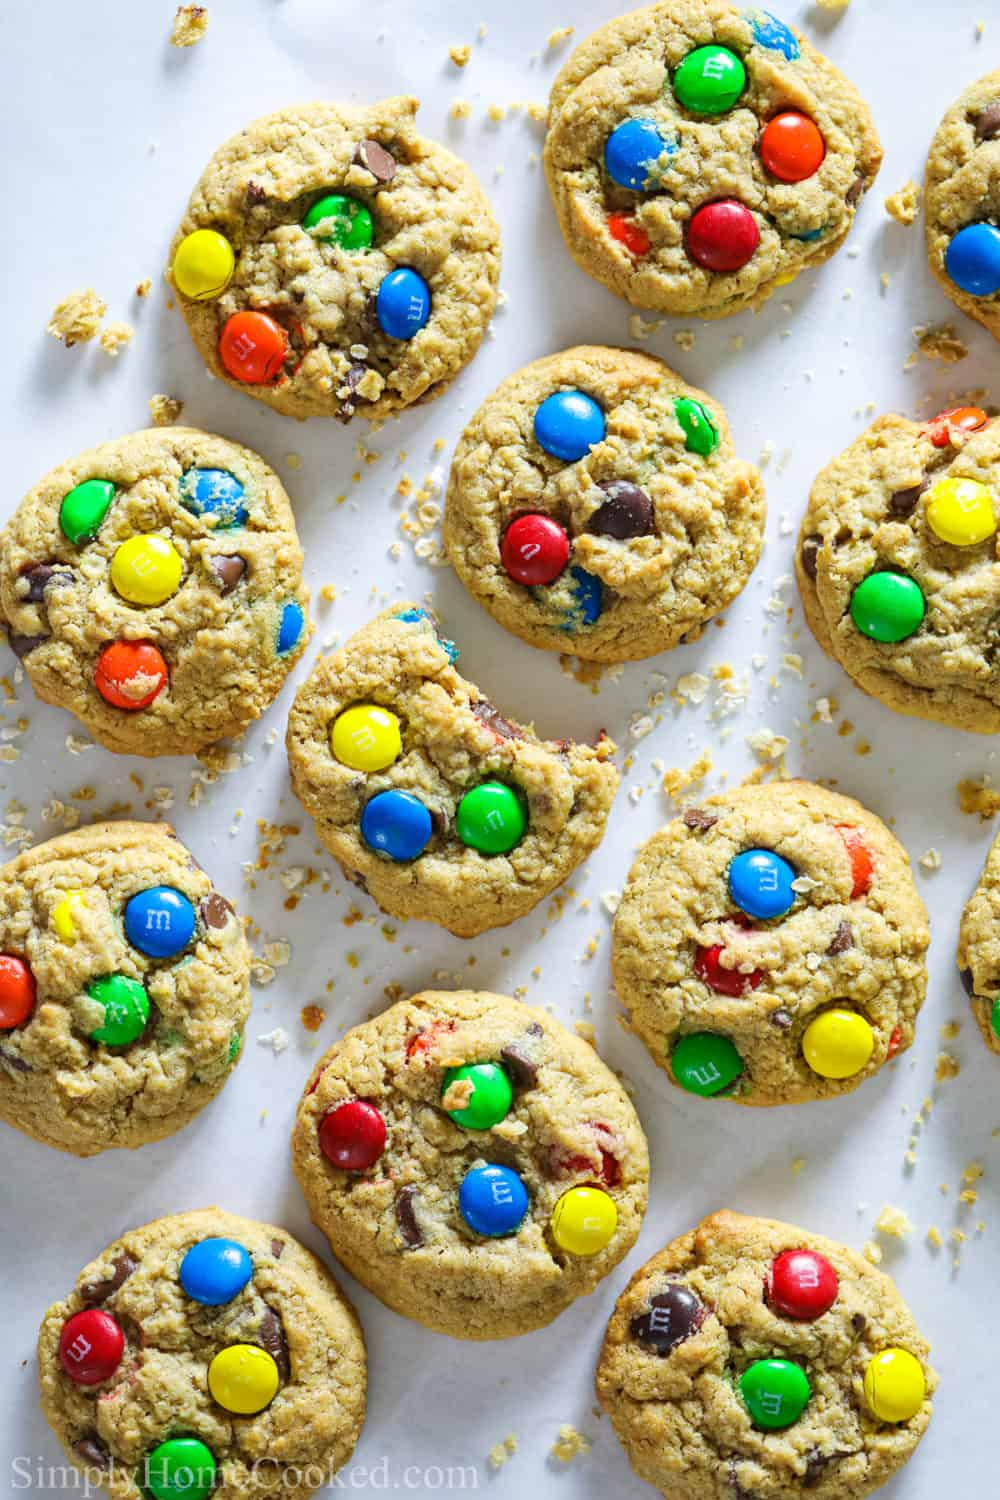 Monster cookies on a white background with crumbs and one cookie with a bite taken out of it.